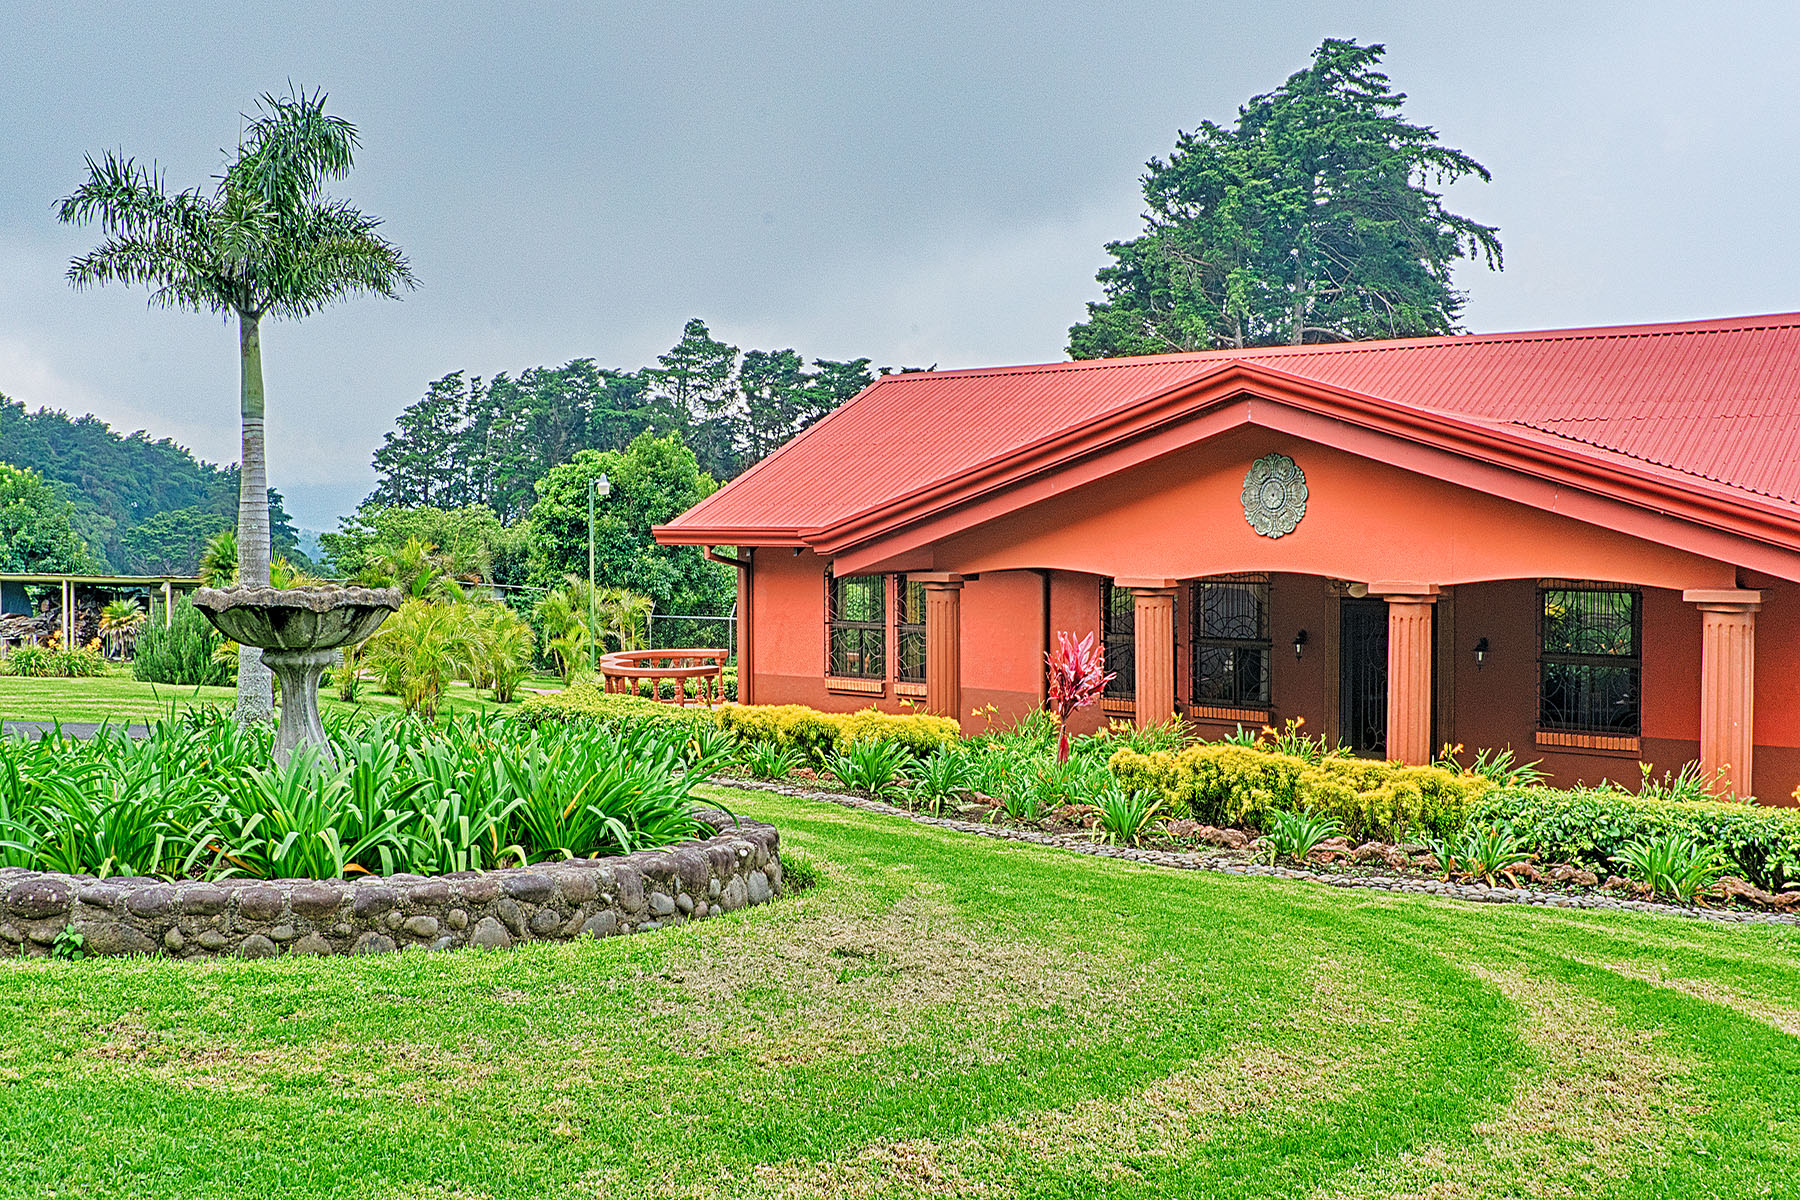 Single Family Homes for Sale at Vistas de Montecito San Rafael, Heredia Costa Rica